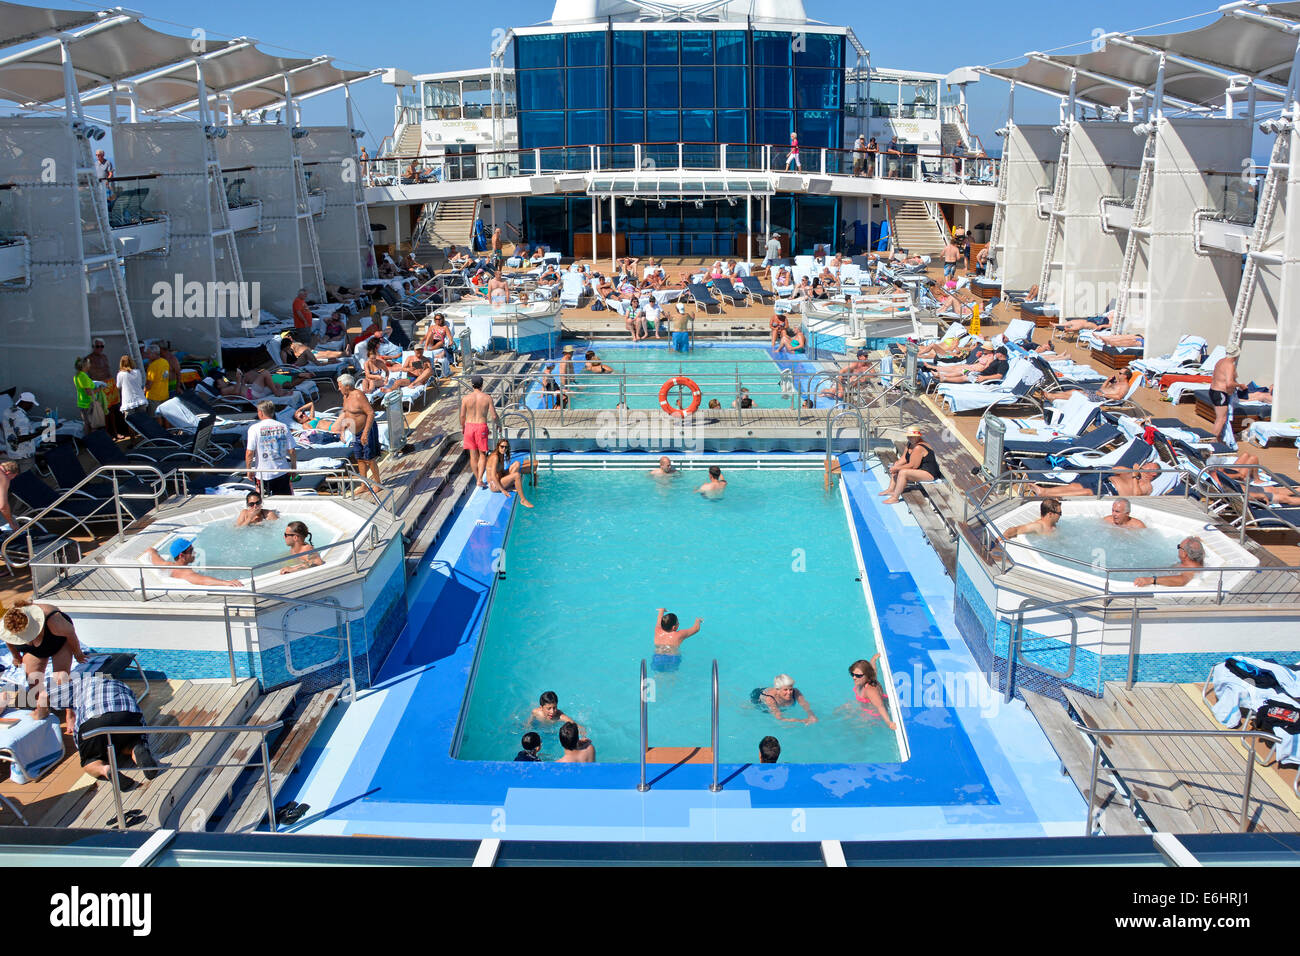 People in cruise ship liner swimming pools Jacuzzi & relaxing on sun lounger on sunbathing deck Mediterranean - Stock Image